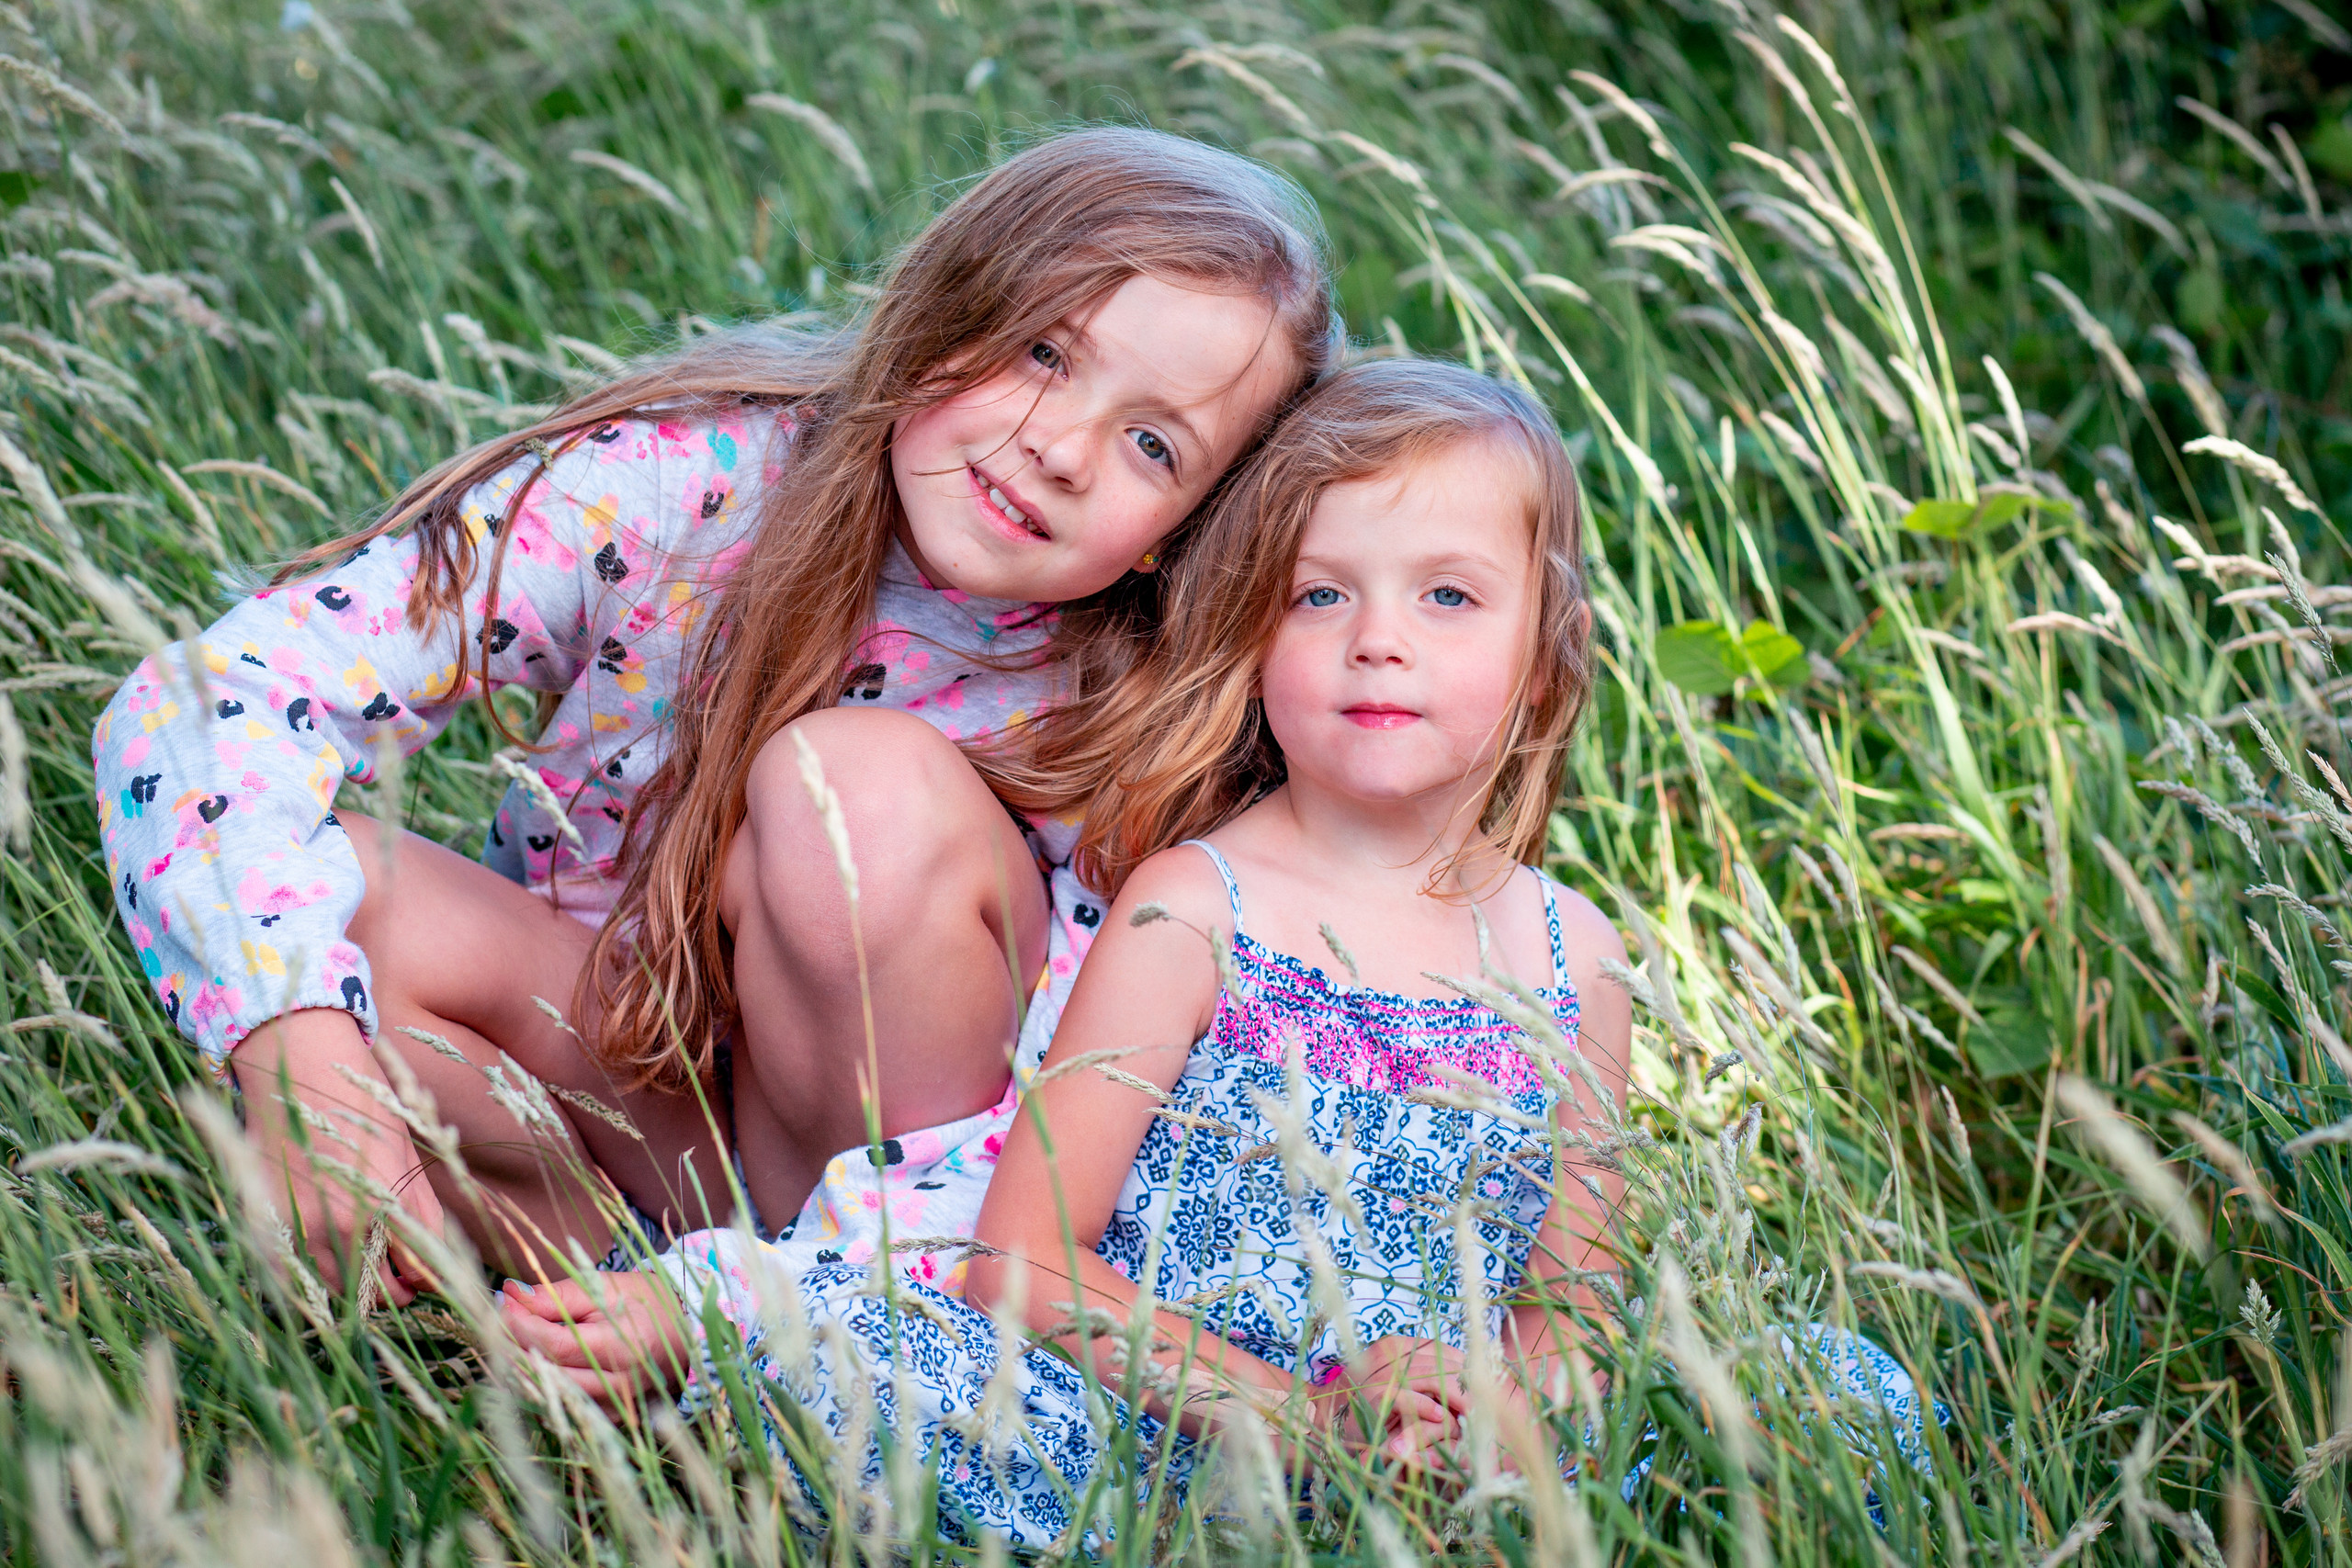 Two girls naturally pose in front of a swansea portrait photographer